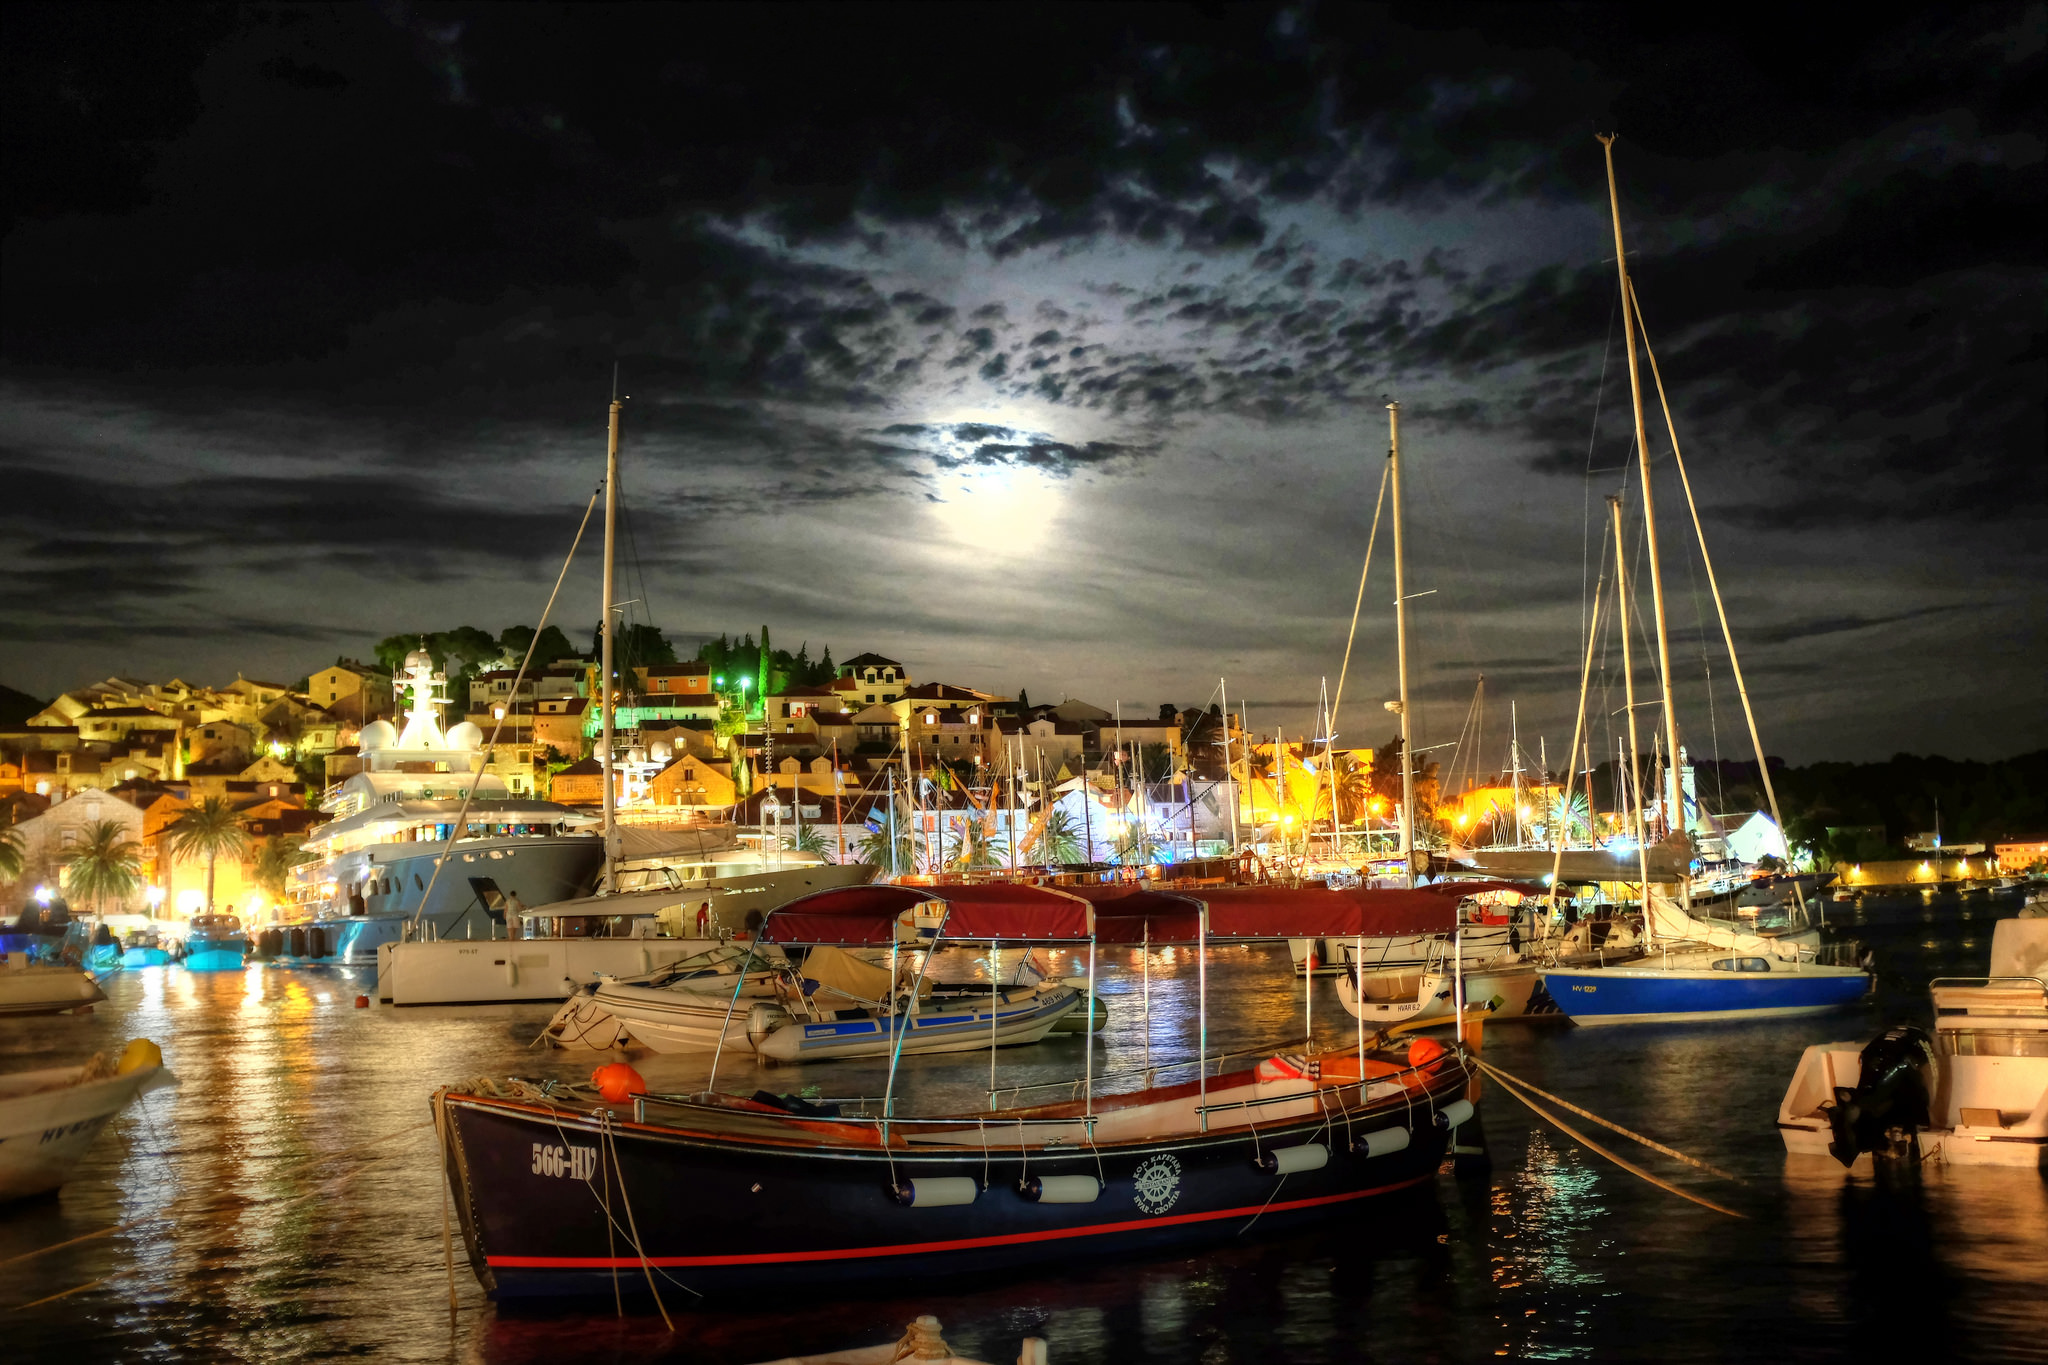 View across boats on the sea to Hvar illuminated by the moonlight and city lights